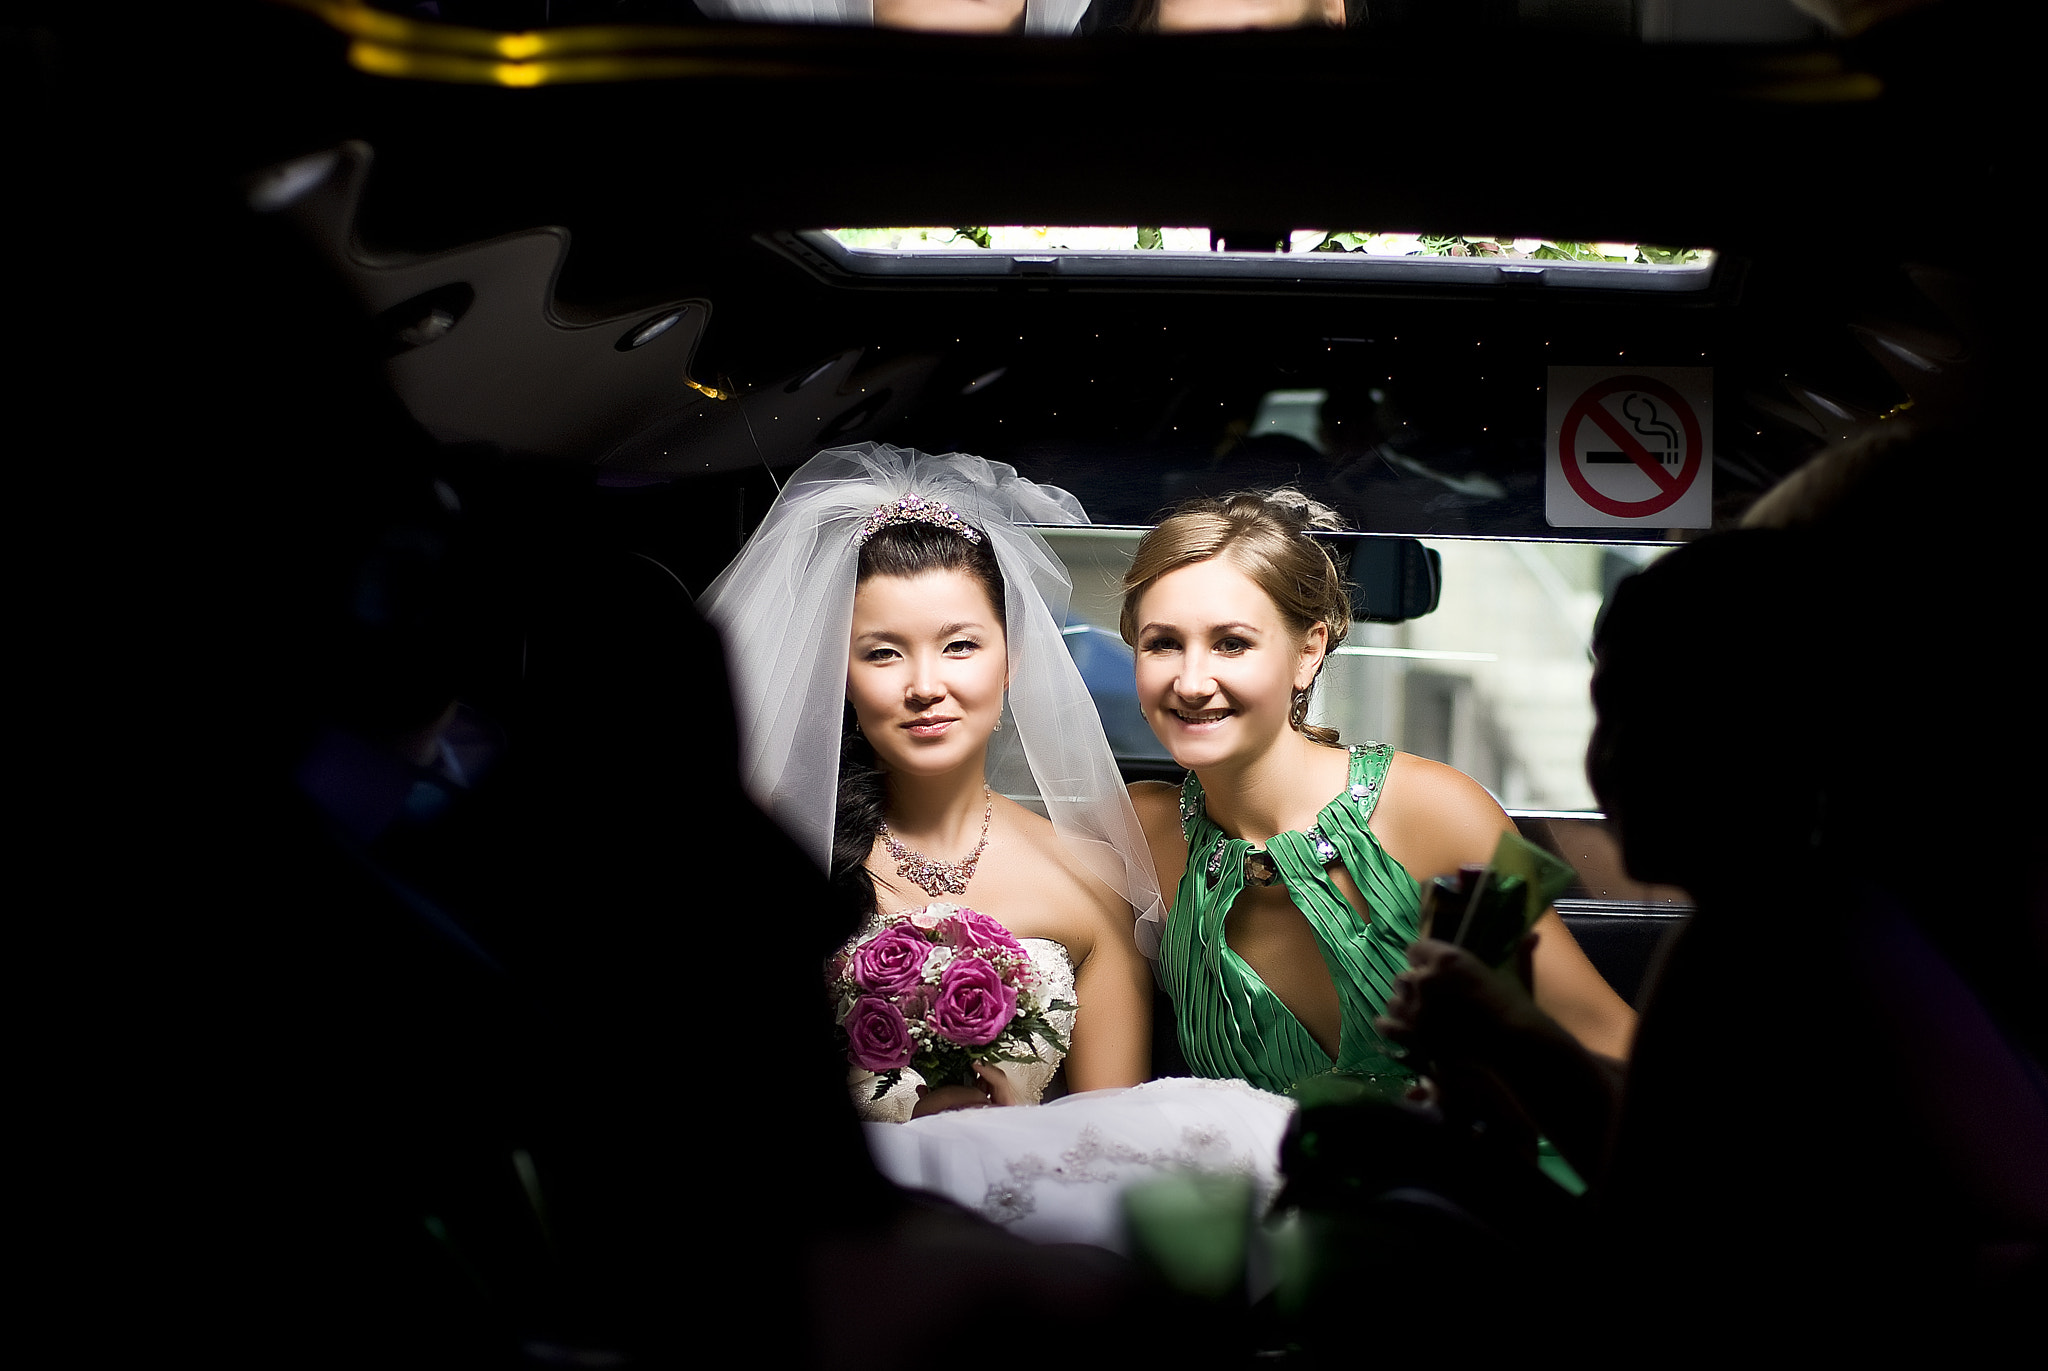 Photograph wedding-3 by Evgeny Shabalin on 500px